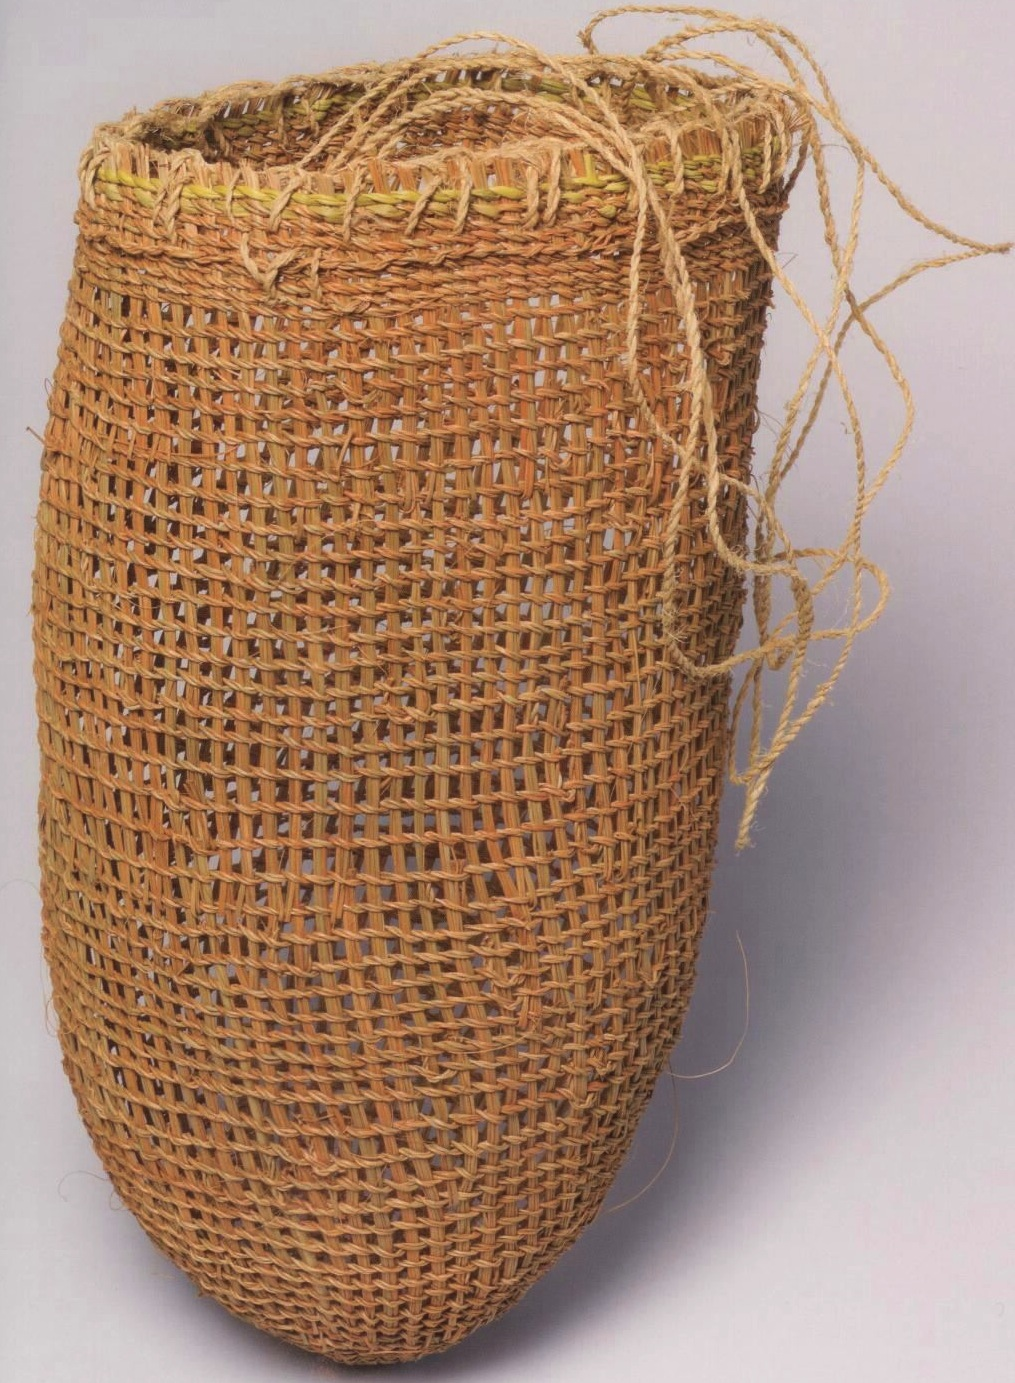 5. Example of basketwork